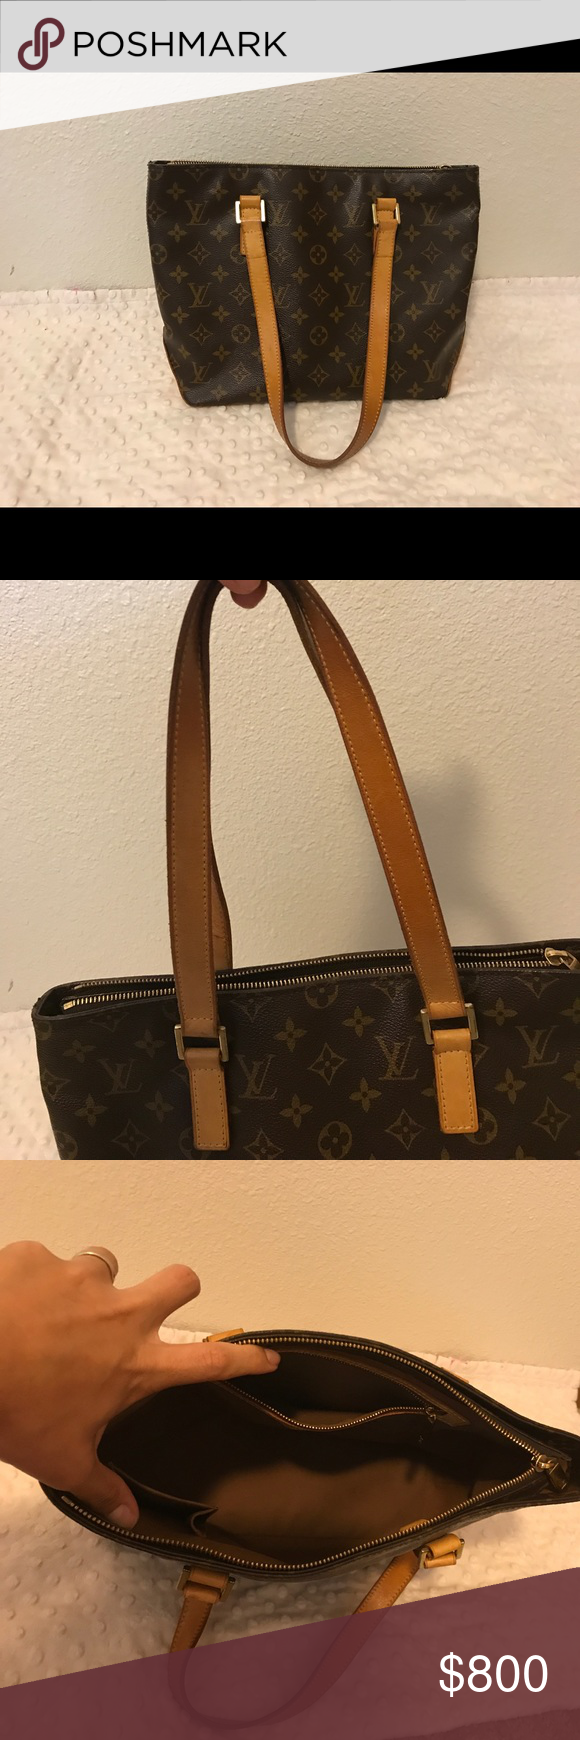 Louis Vuitton Cabas Piano Selling my Louis. Sad to see it go but it's just too small for all the things I carry now with baby 👶🏽 It has no tears, no peeling and no major stains. Comes with dust bag. The outside bottom of the bag has some wear and tear scuffs but that's normal. The handle straps are still in great light color condition. This bag still has a lot of life left. It's an authentic bag not a replica so please do not low ball. Thank you 😊 Louis Vuitton Bags Totes